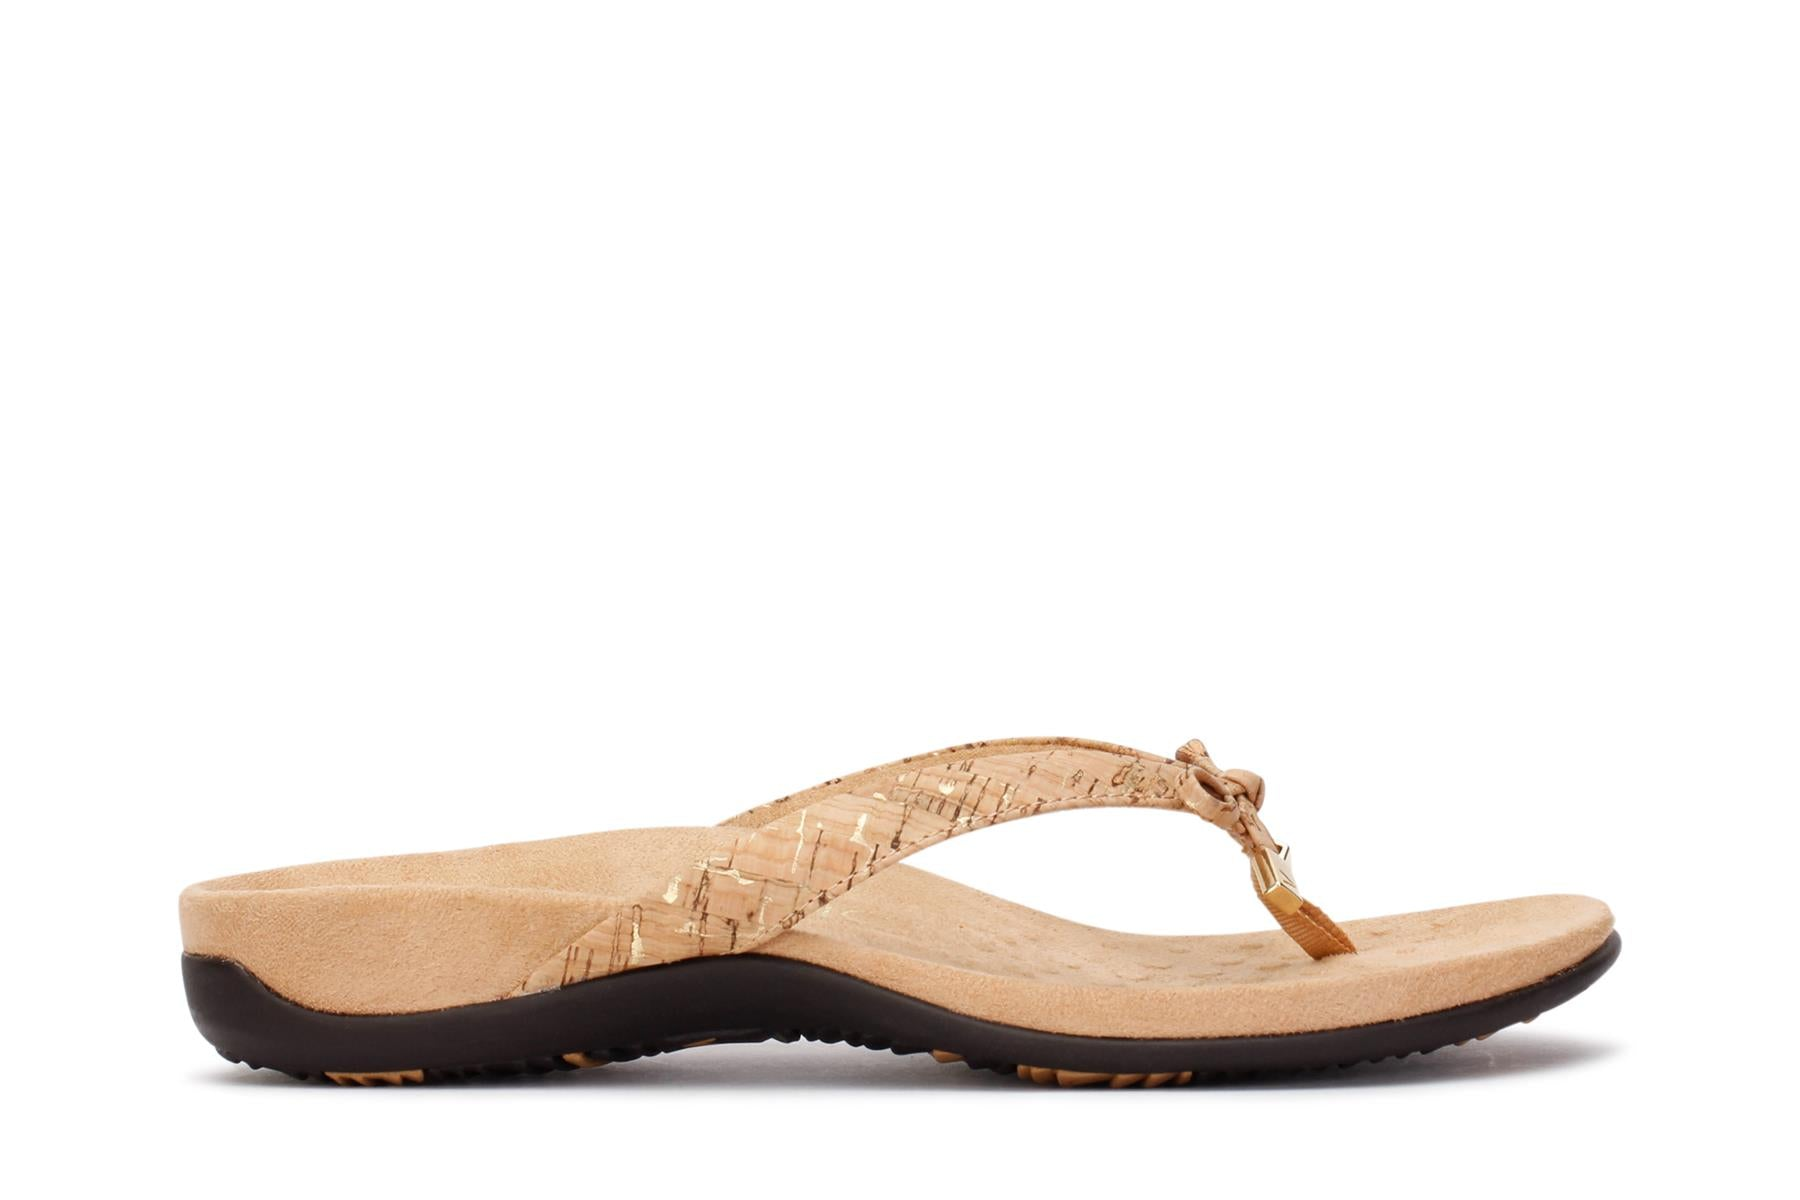 Bella II Vionic Sandals